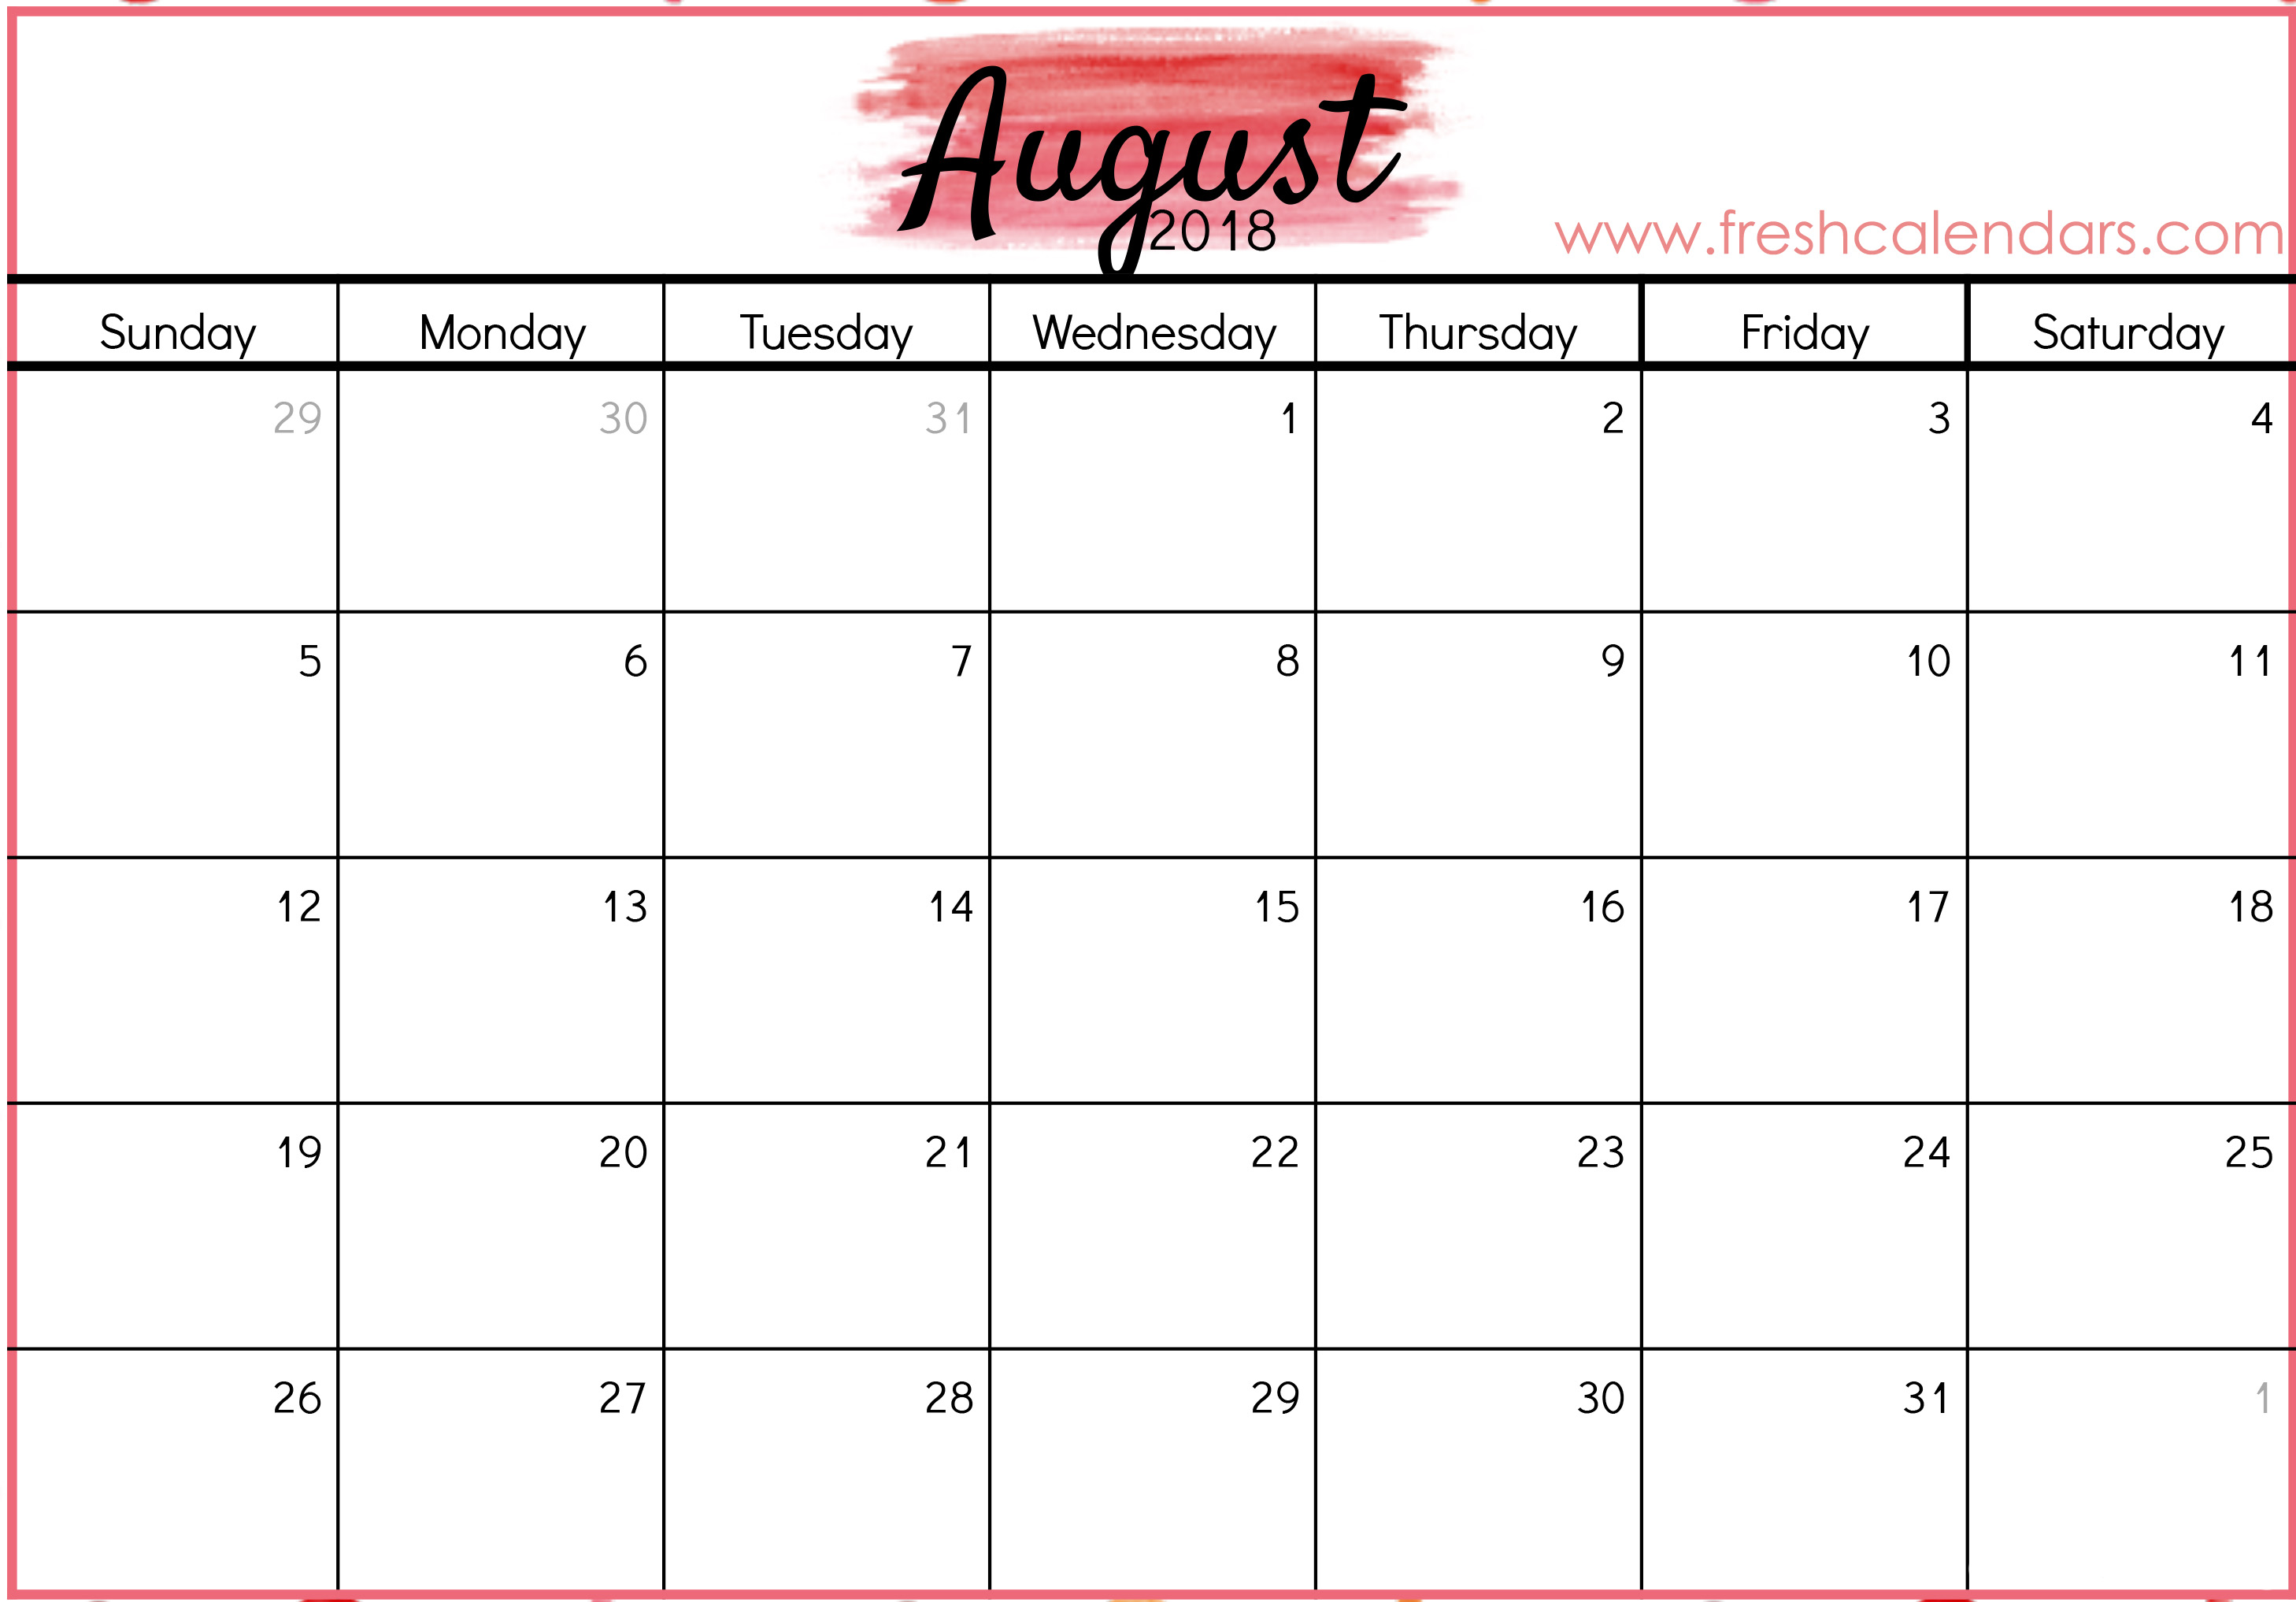 picture about Printable Calendars called August 2018 Calendar Printable - Refreshing Calendars